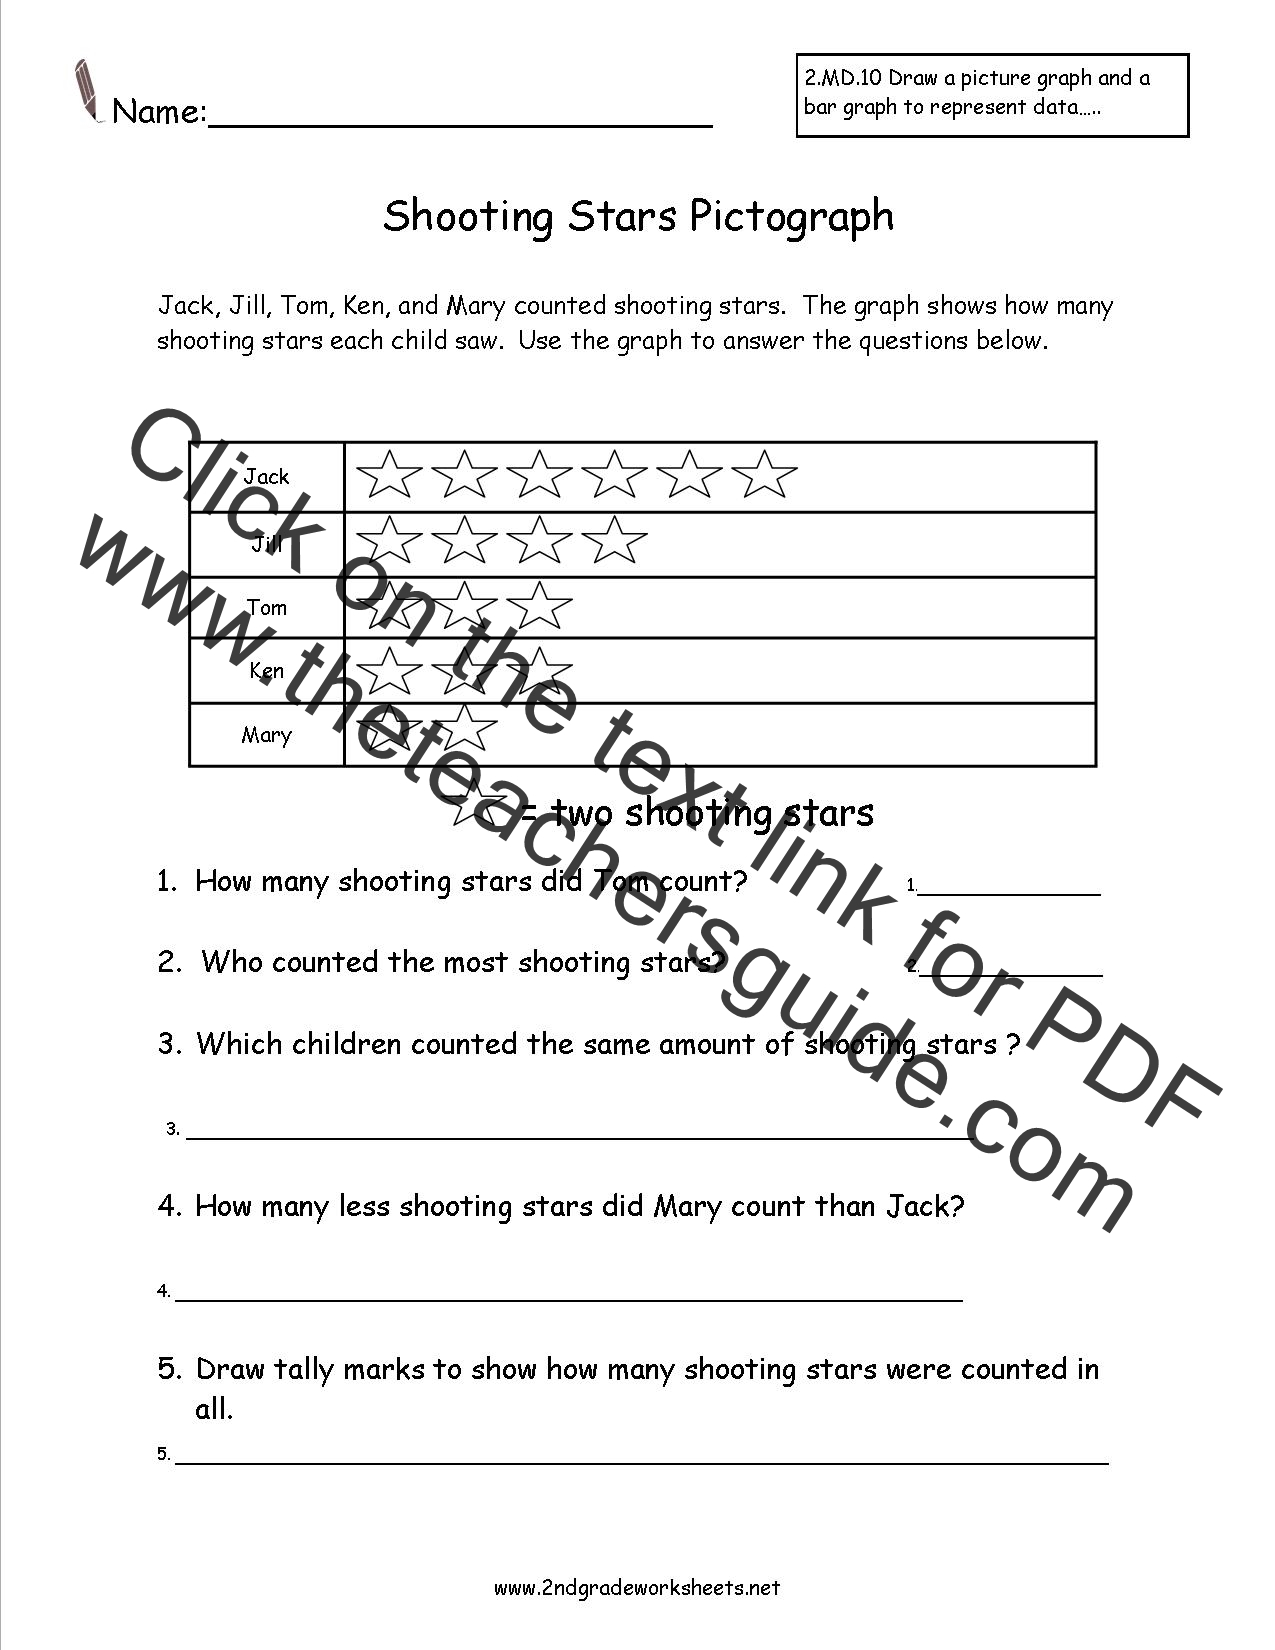 Free Worksheet 3rd Grade Inferencing Worksheets second grade reading and creating pictograph worksheets shooting stars worksheet